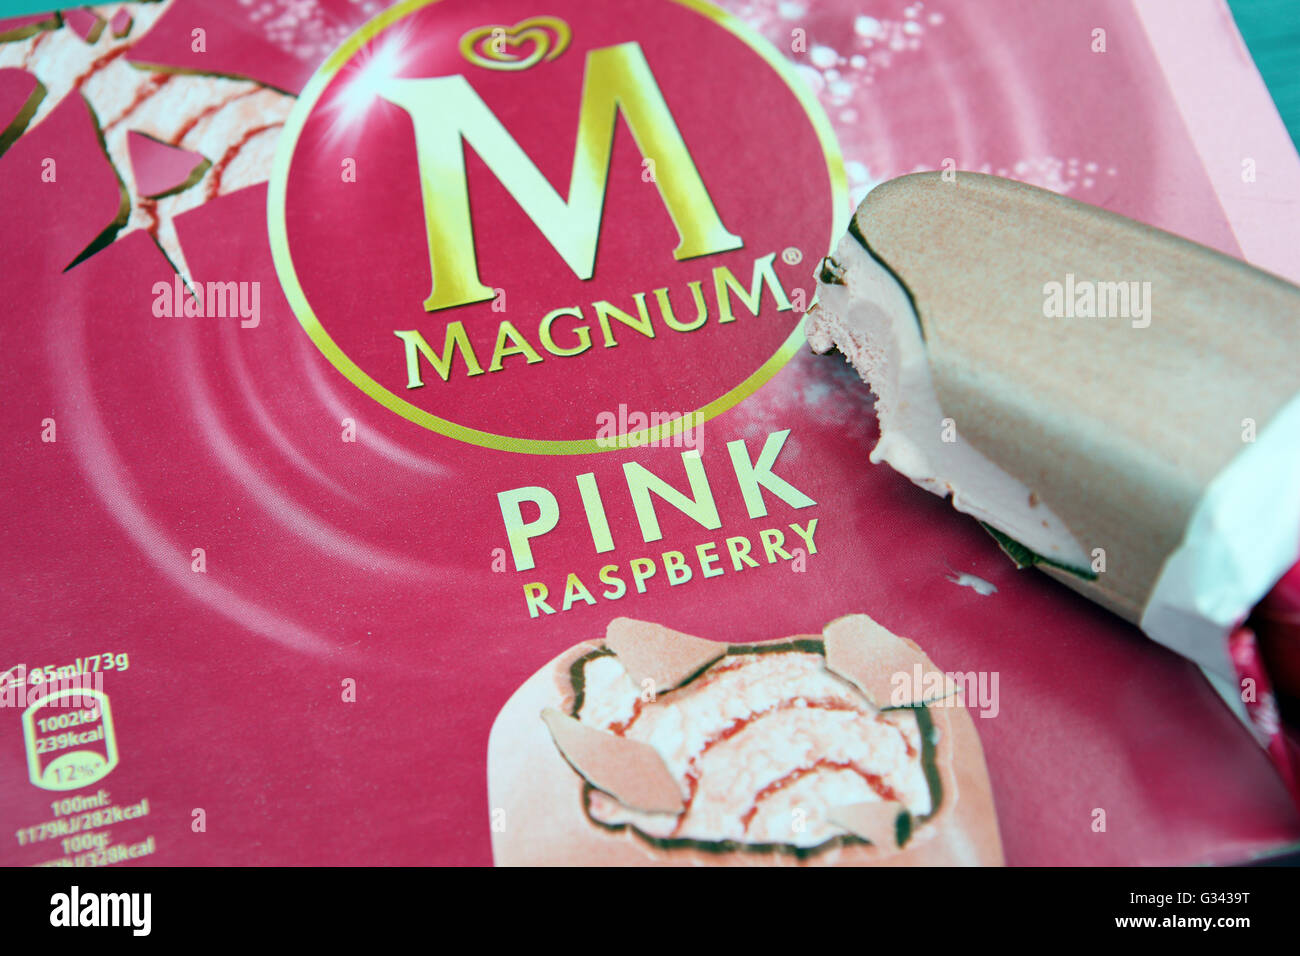 A Magnum Ice cream lolly with a bite out of it, in pink raspberry flavour. - Stock Image